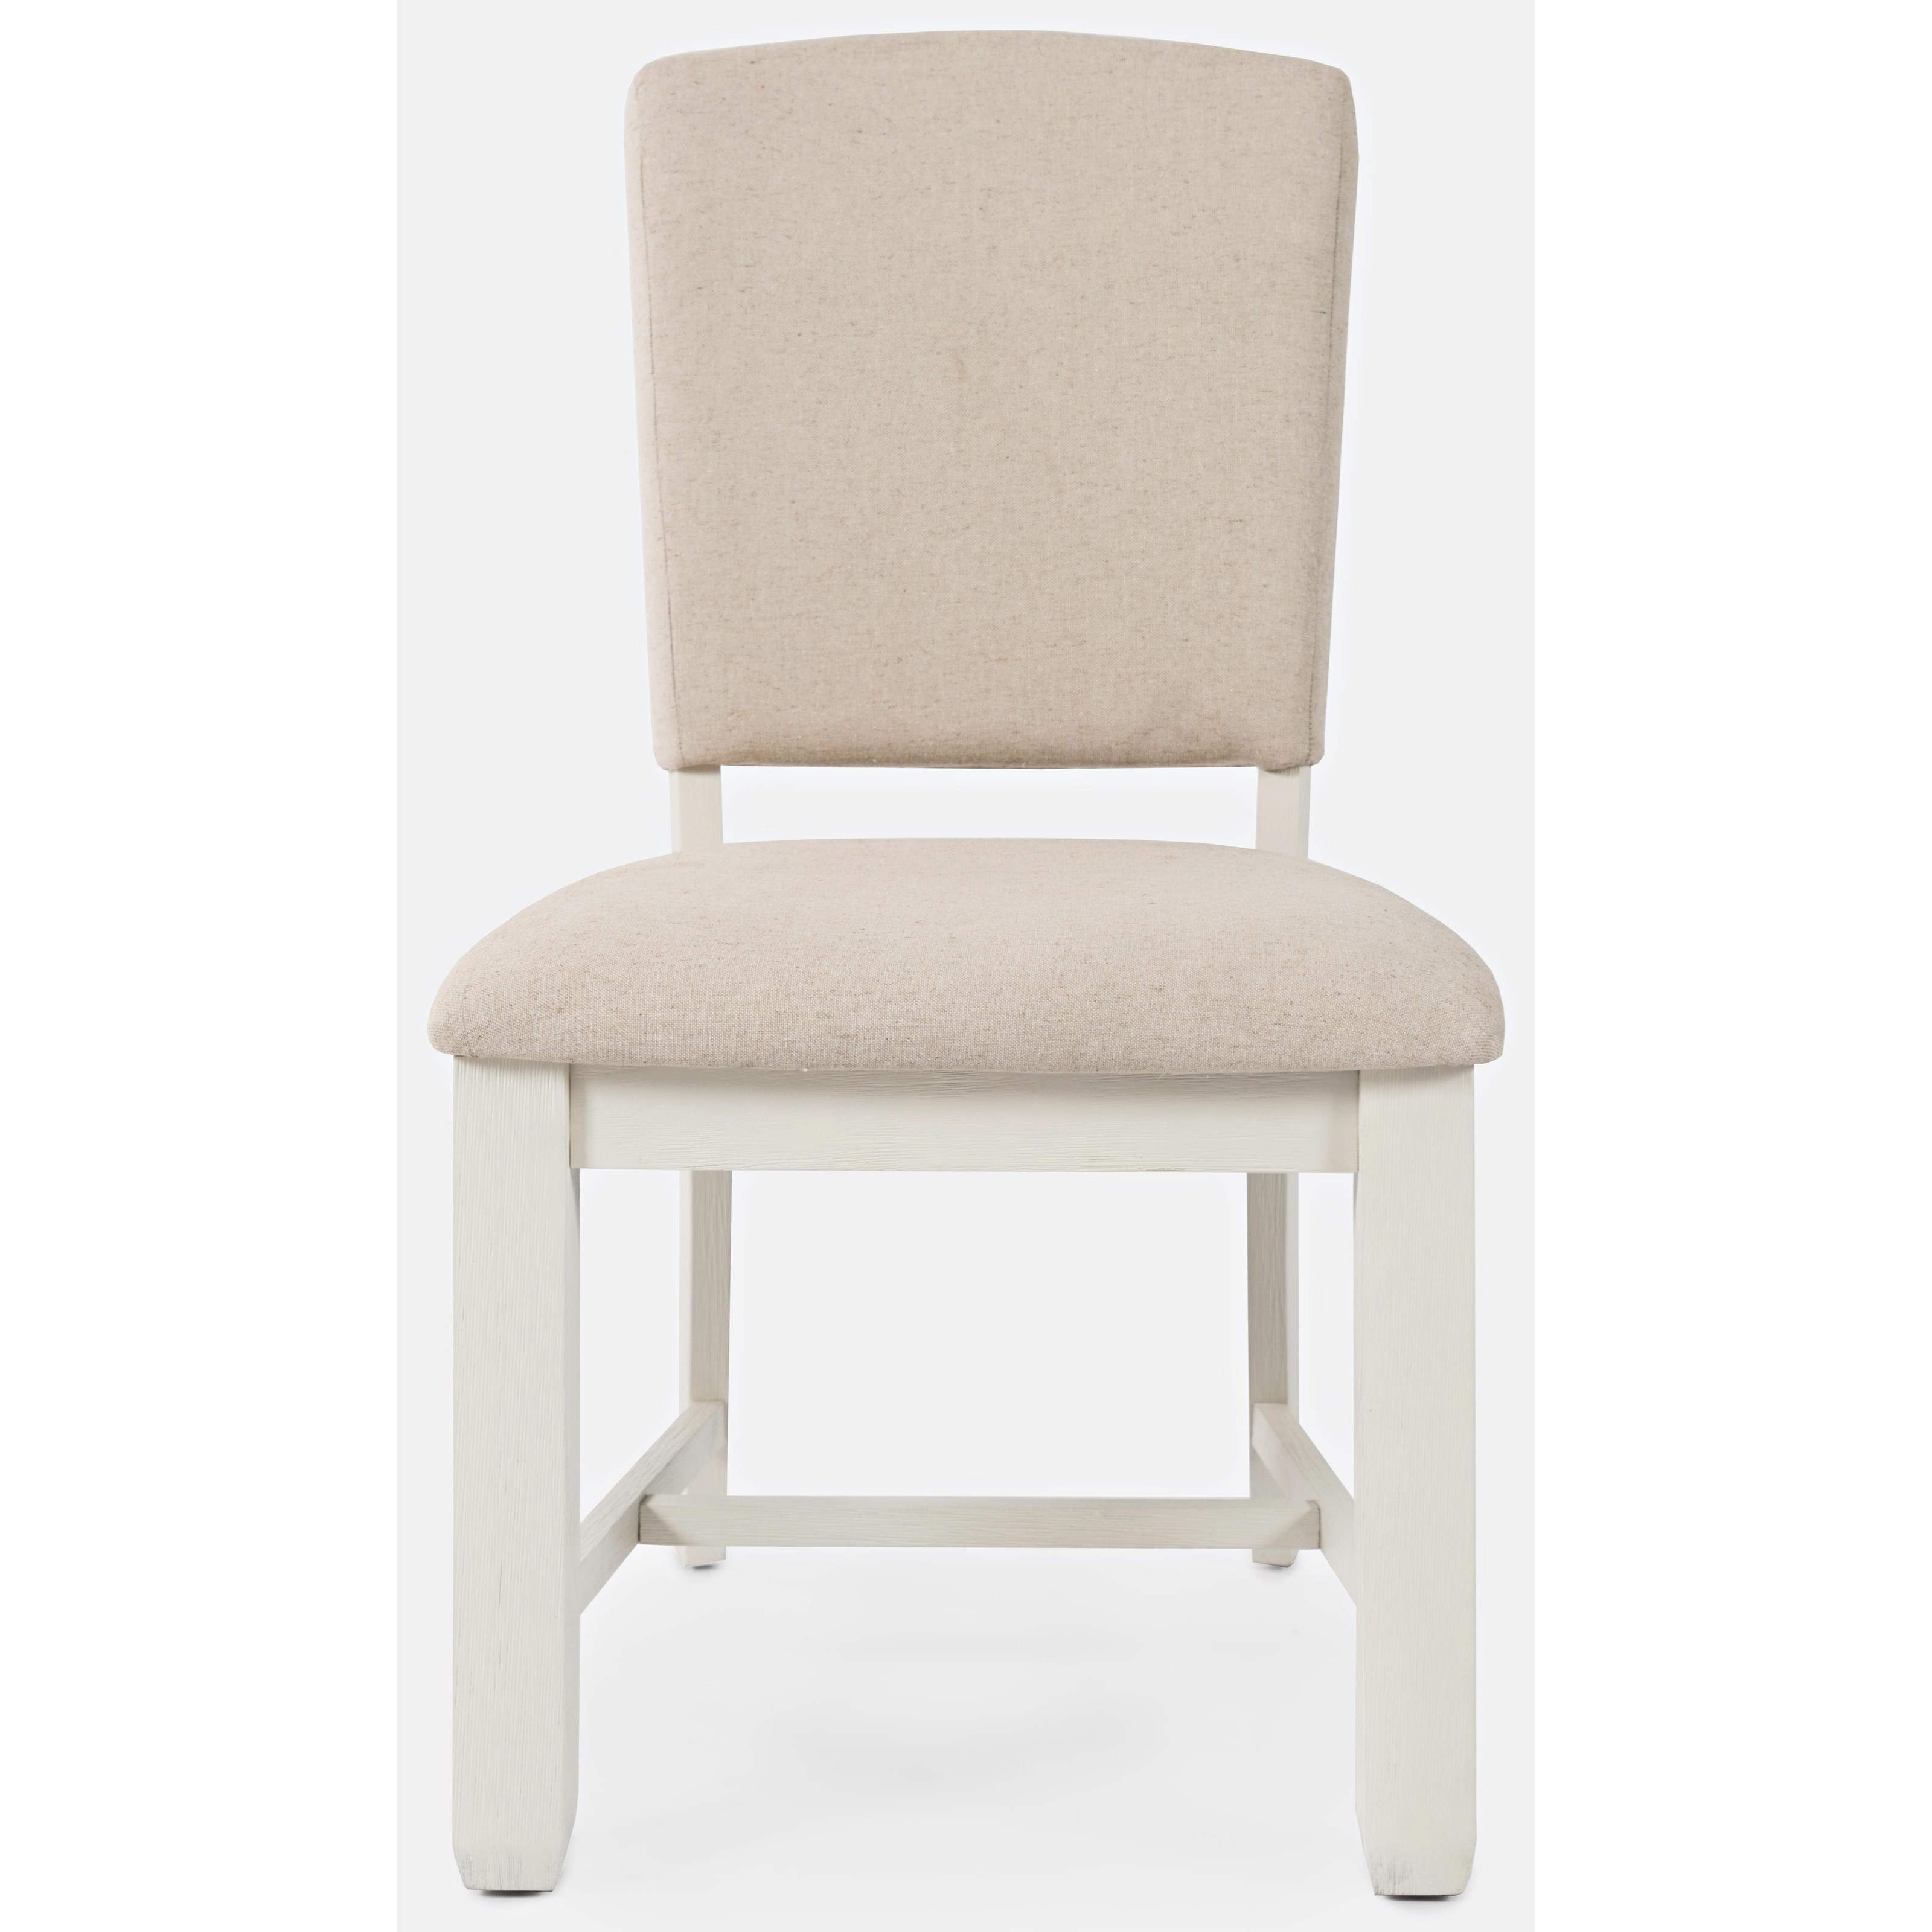 Dana Point Upholstered Chair by VFM Signature at Virginia Furniture Market